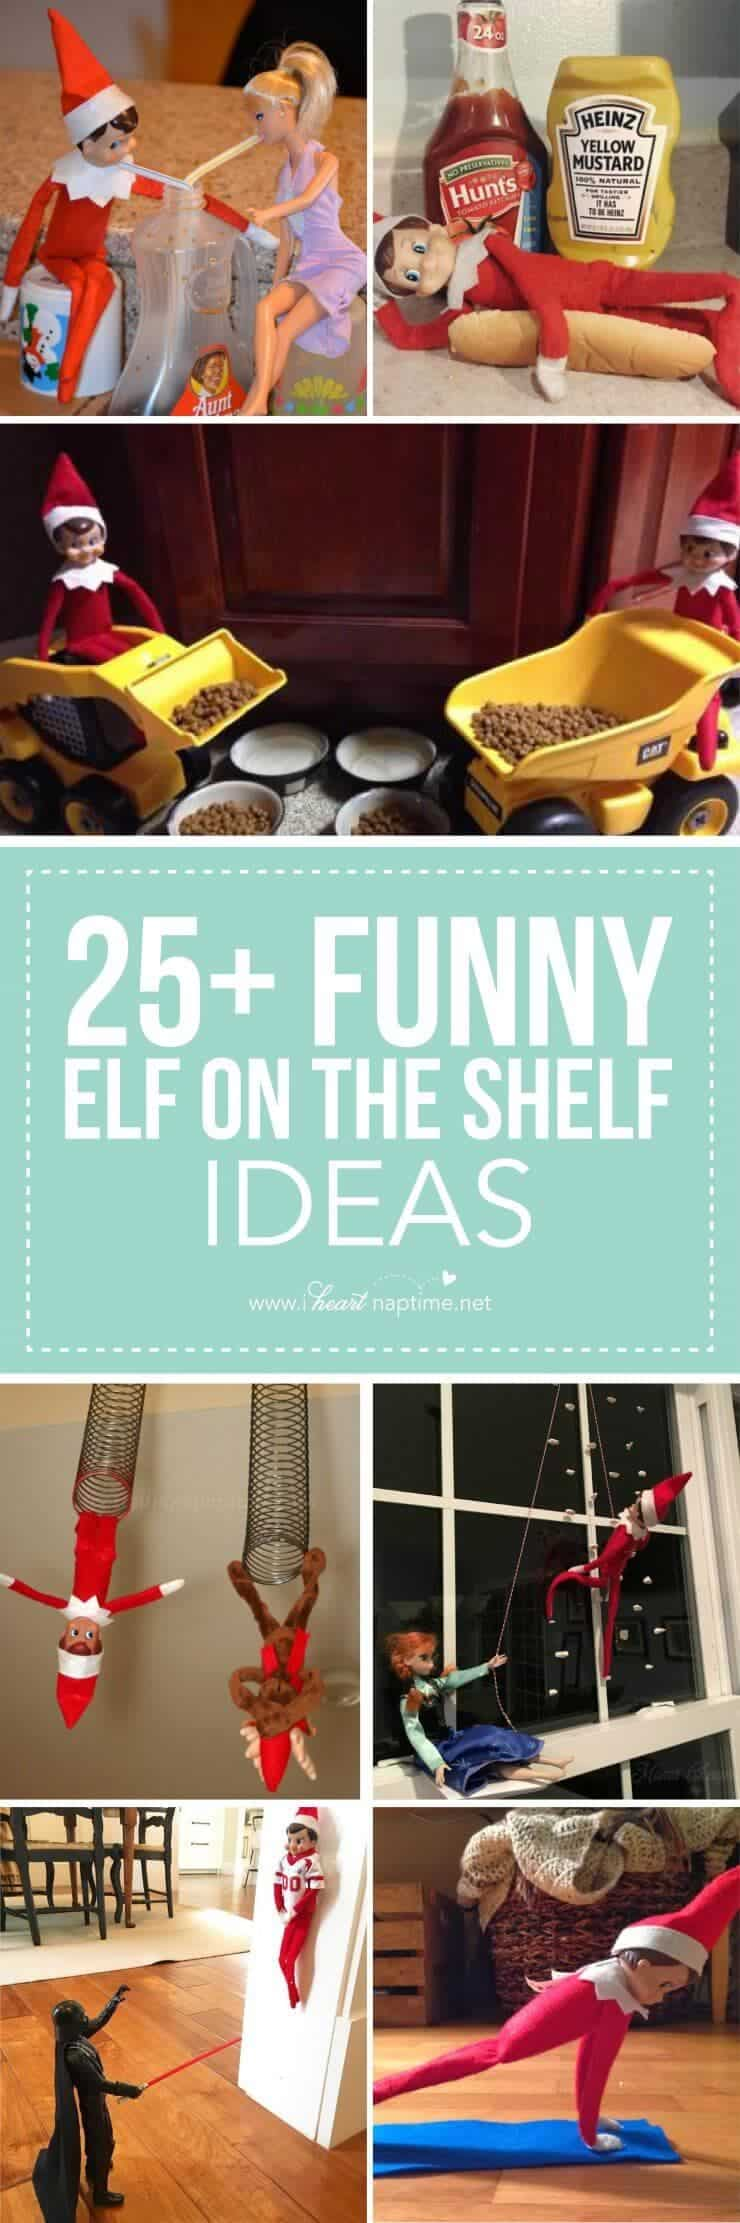 25 funny elf on the shelf ideas i heart nap time. Black Bedroom Furniture Sets. Home Design Ideas